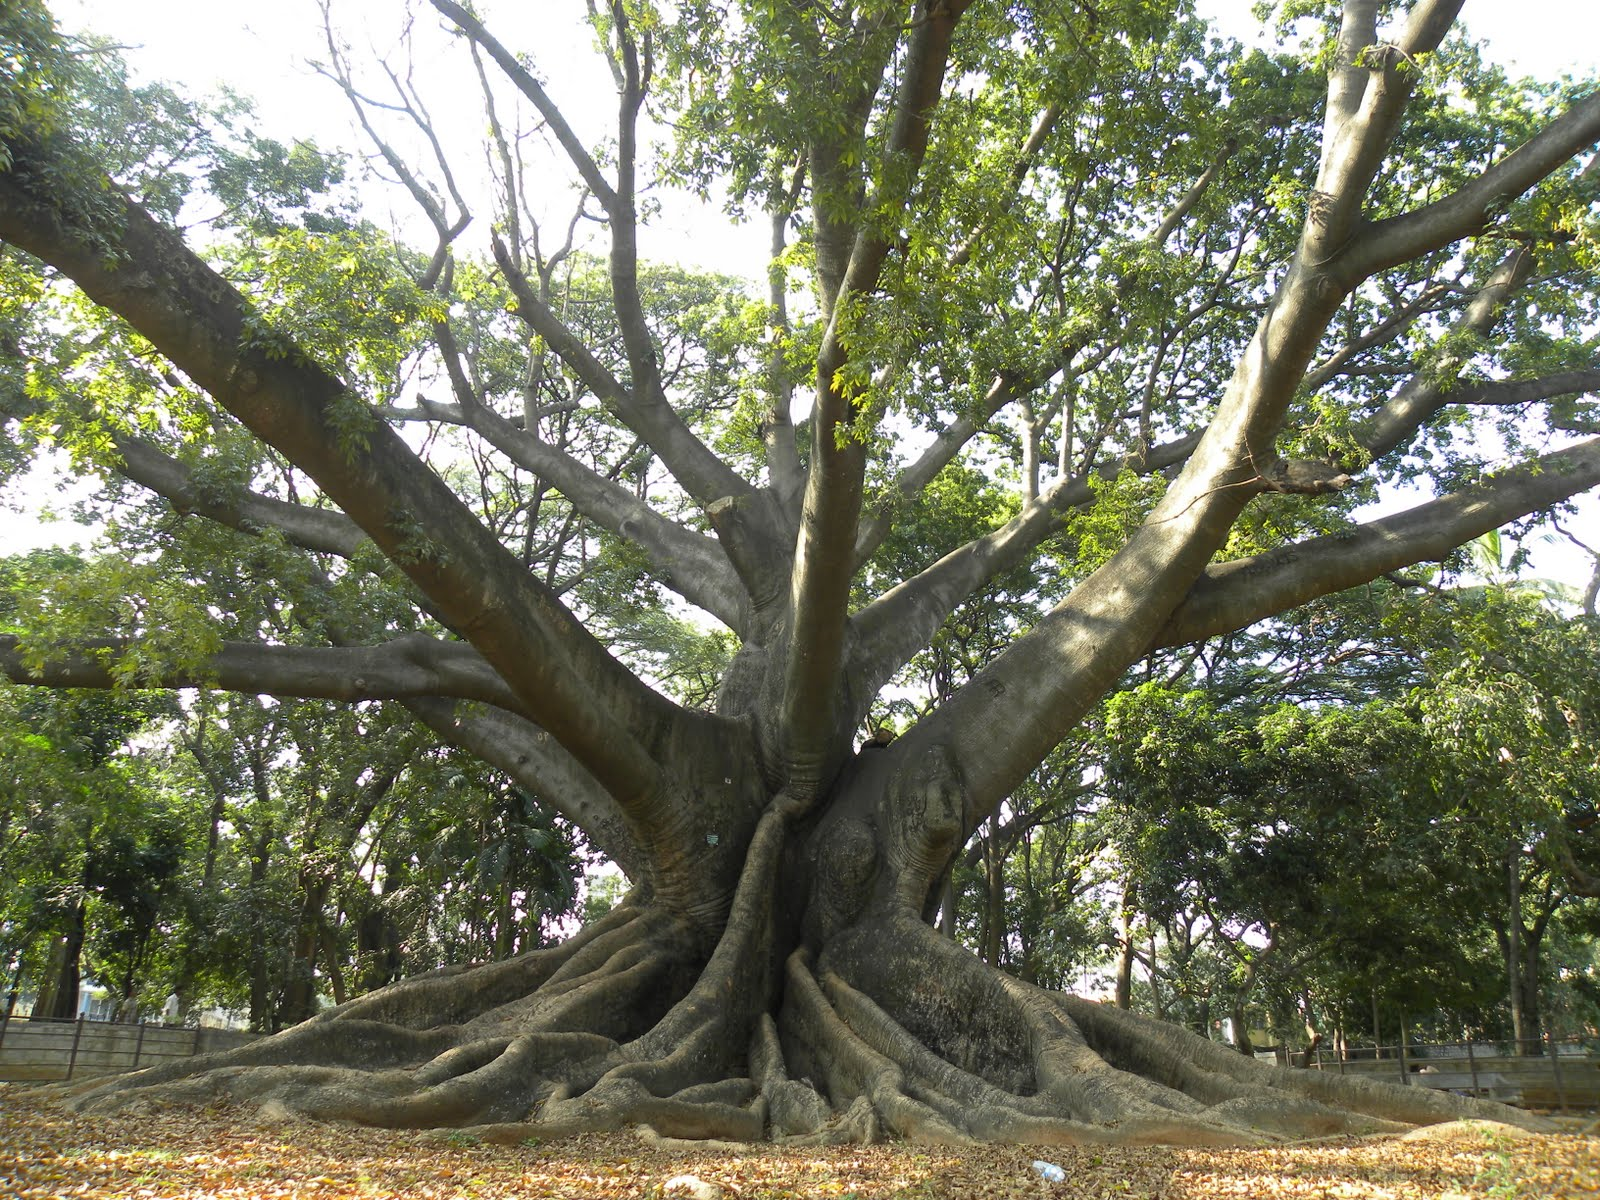 nemus: The Gigantic Kapok Tree